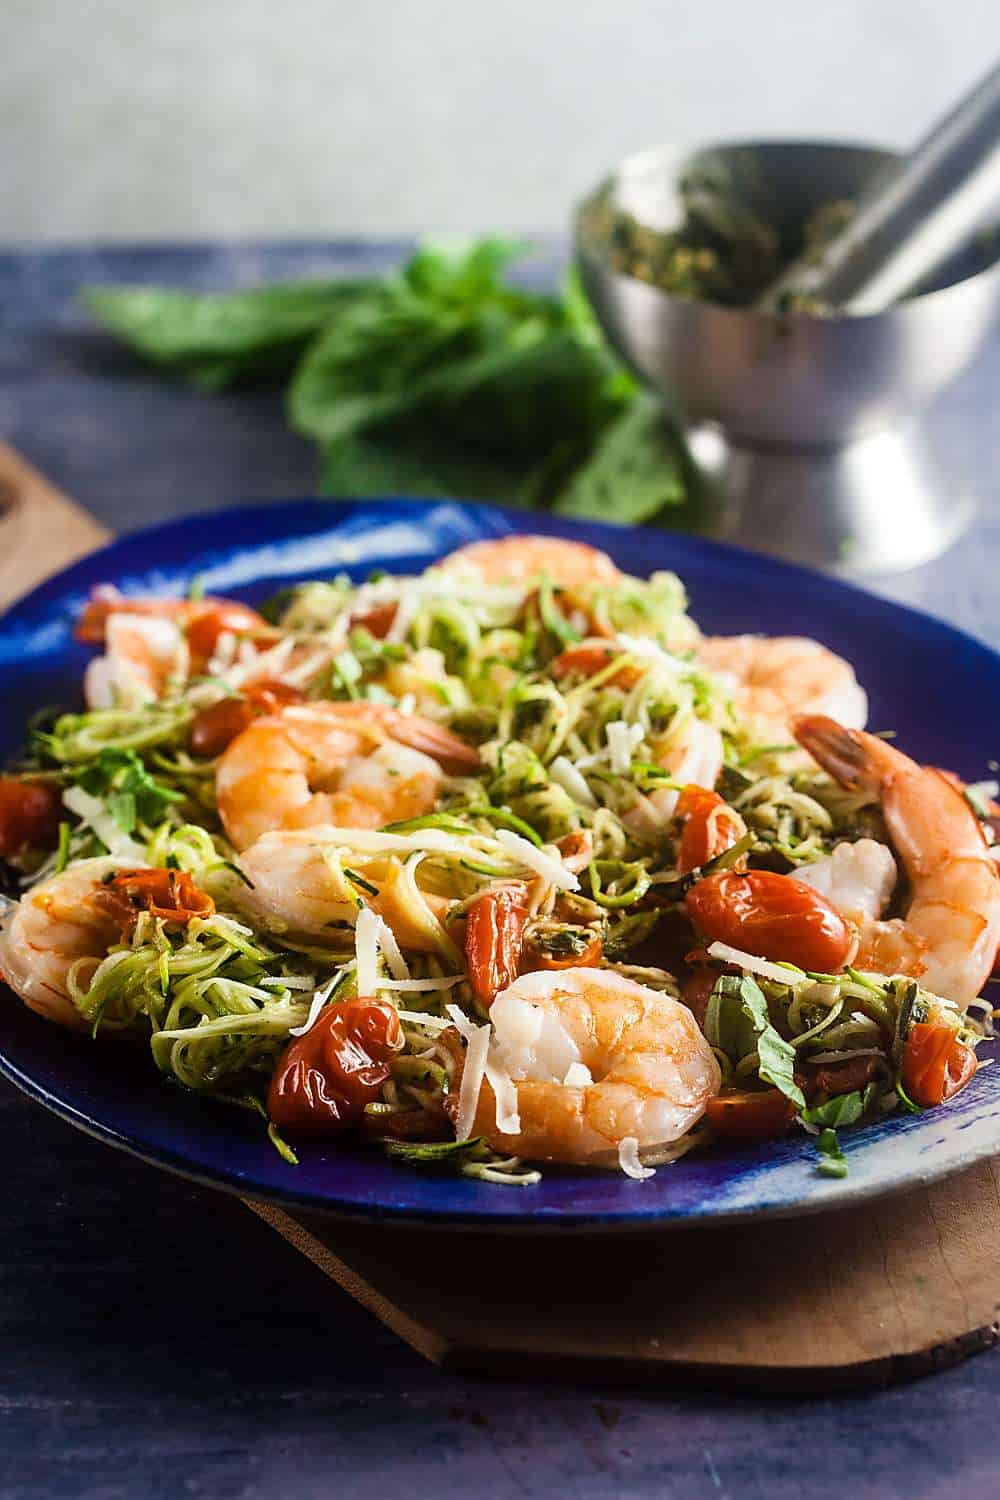 Pesto zucchini noodles with baked shrimp and tomatoes on a blue serving platter